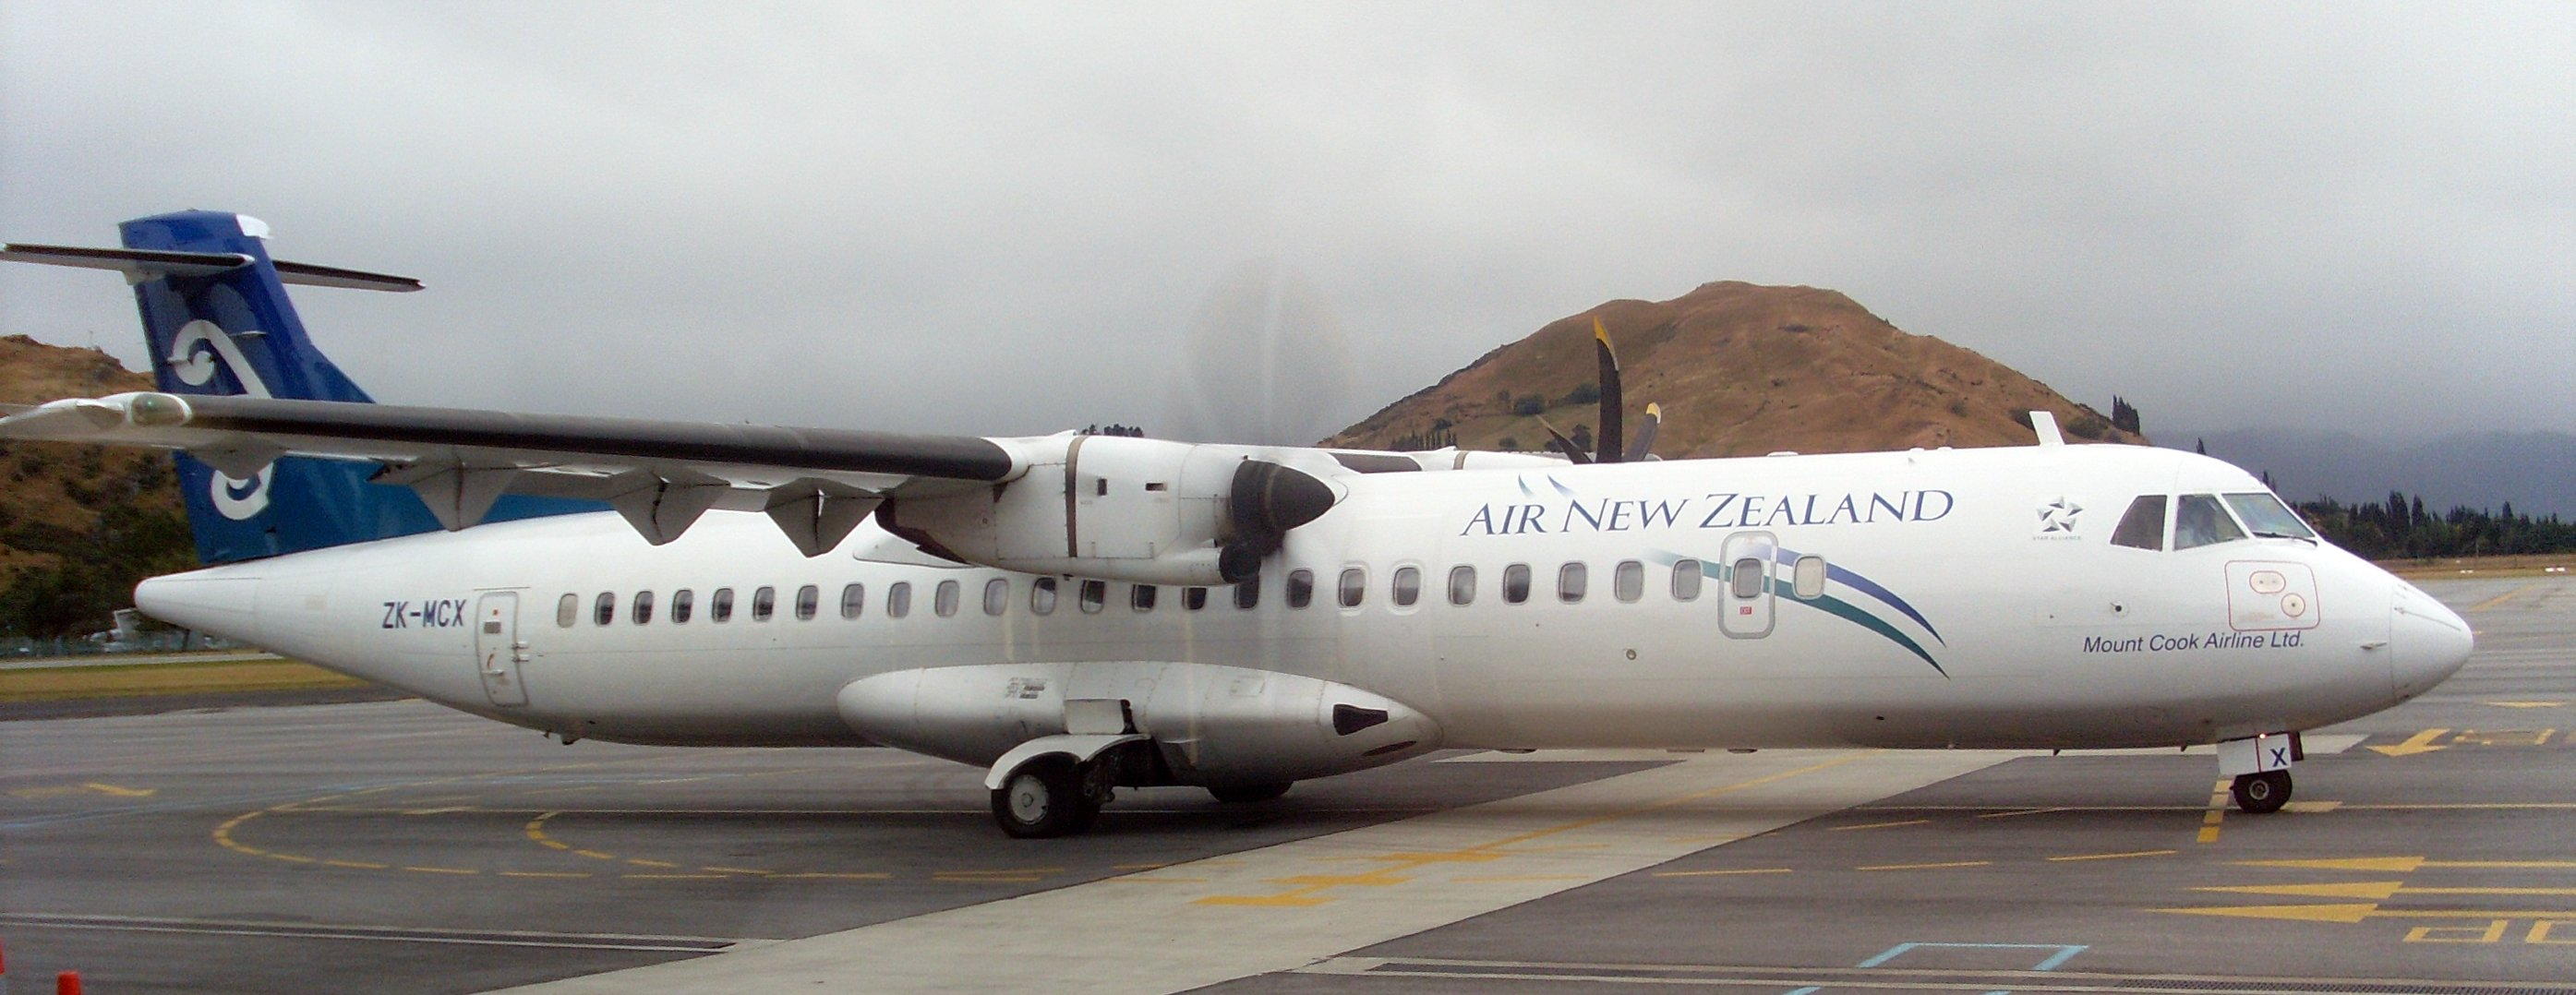 Air New Zealand Hotels